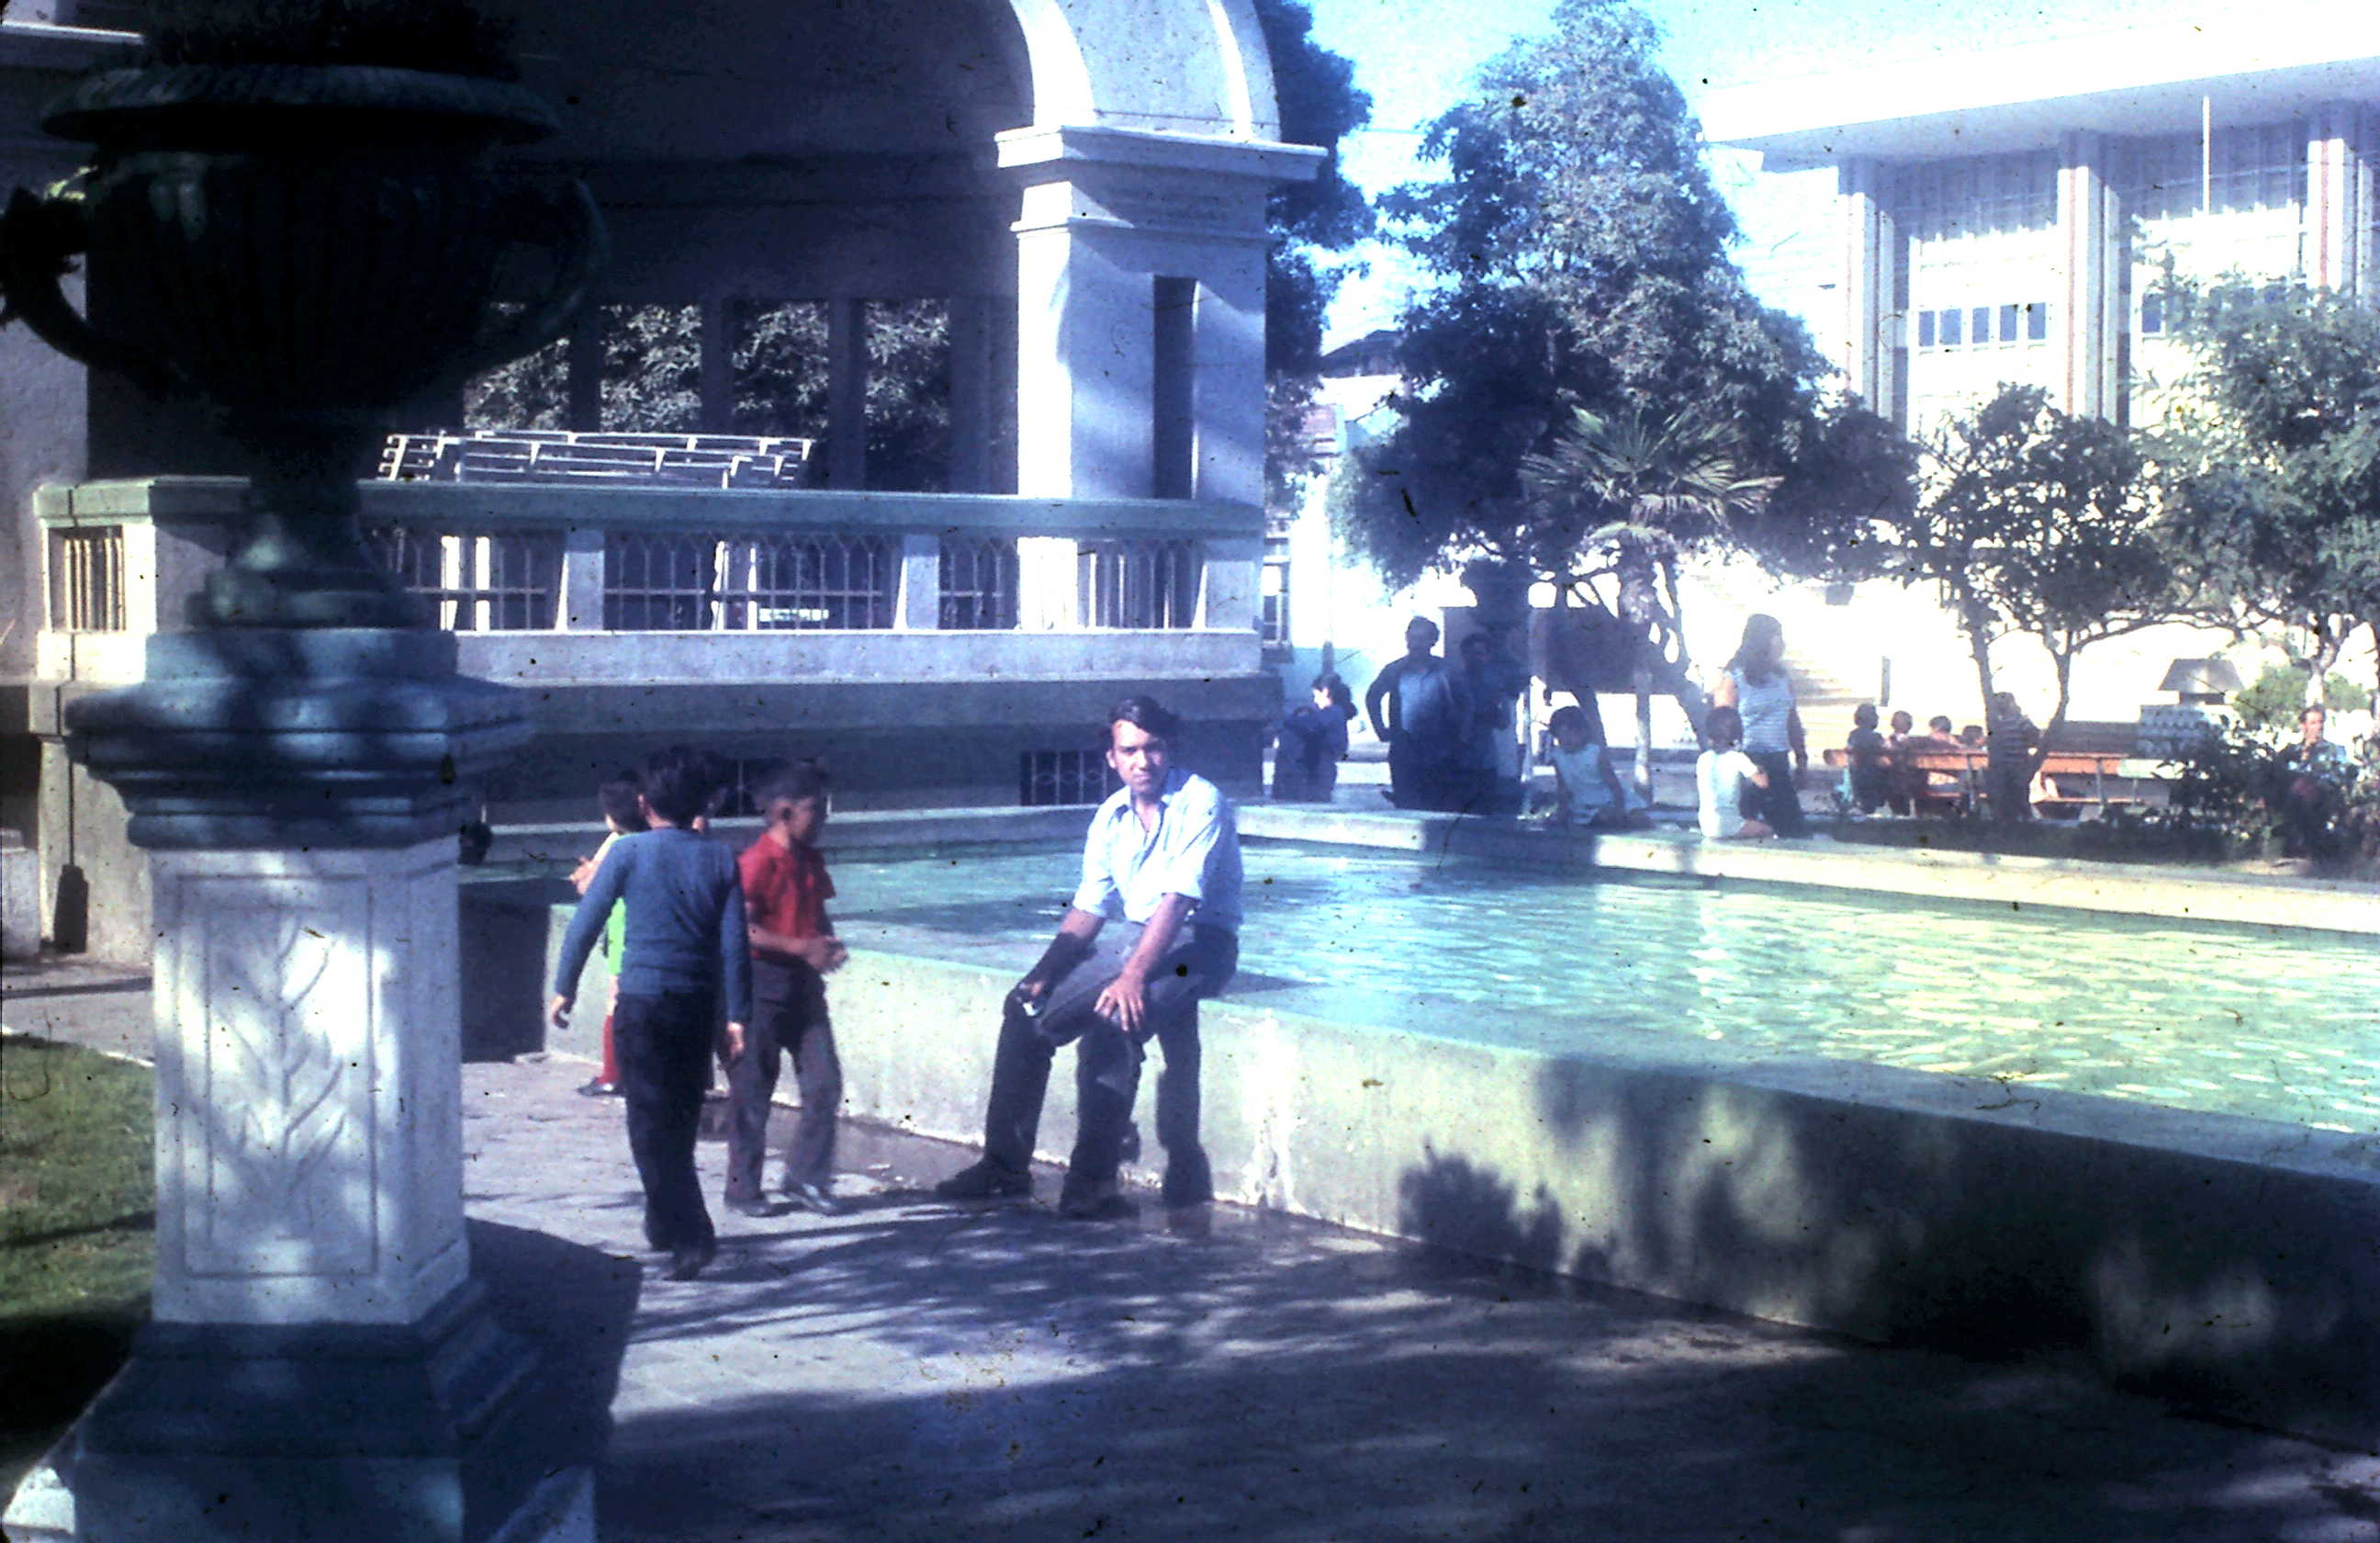 Enterreno - Fotos históricas de chile - fotos antiguas de Chile - Plaza de Coquimbo en 1972